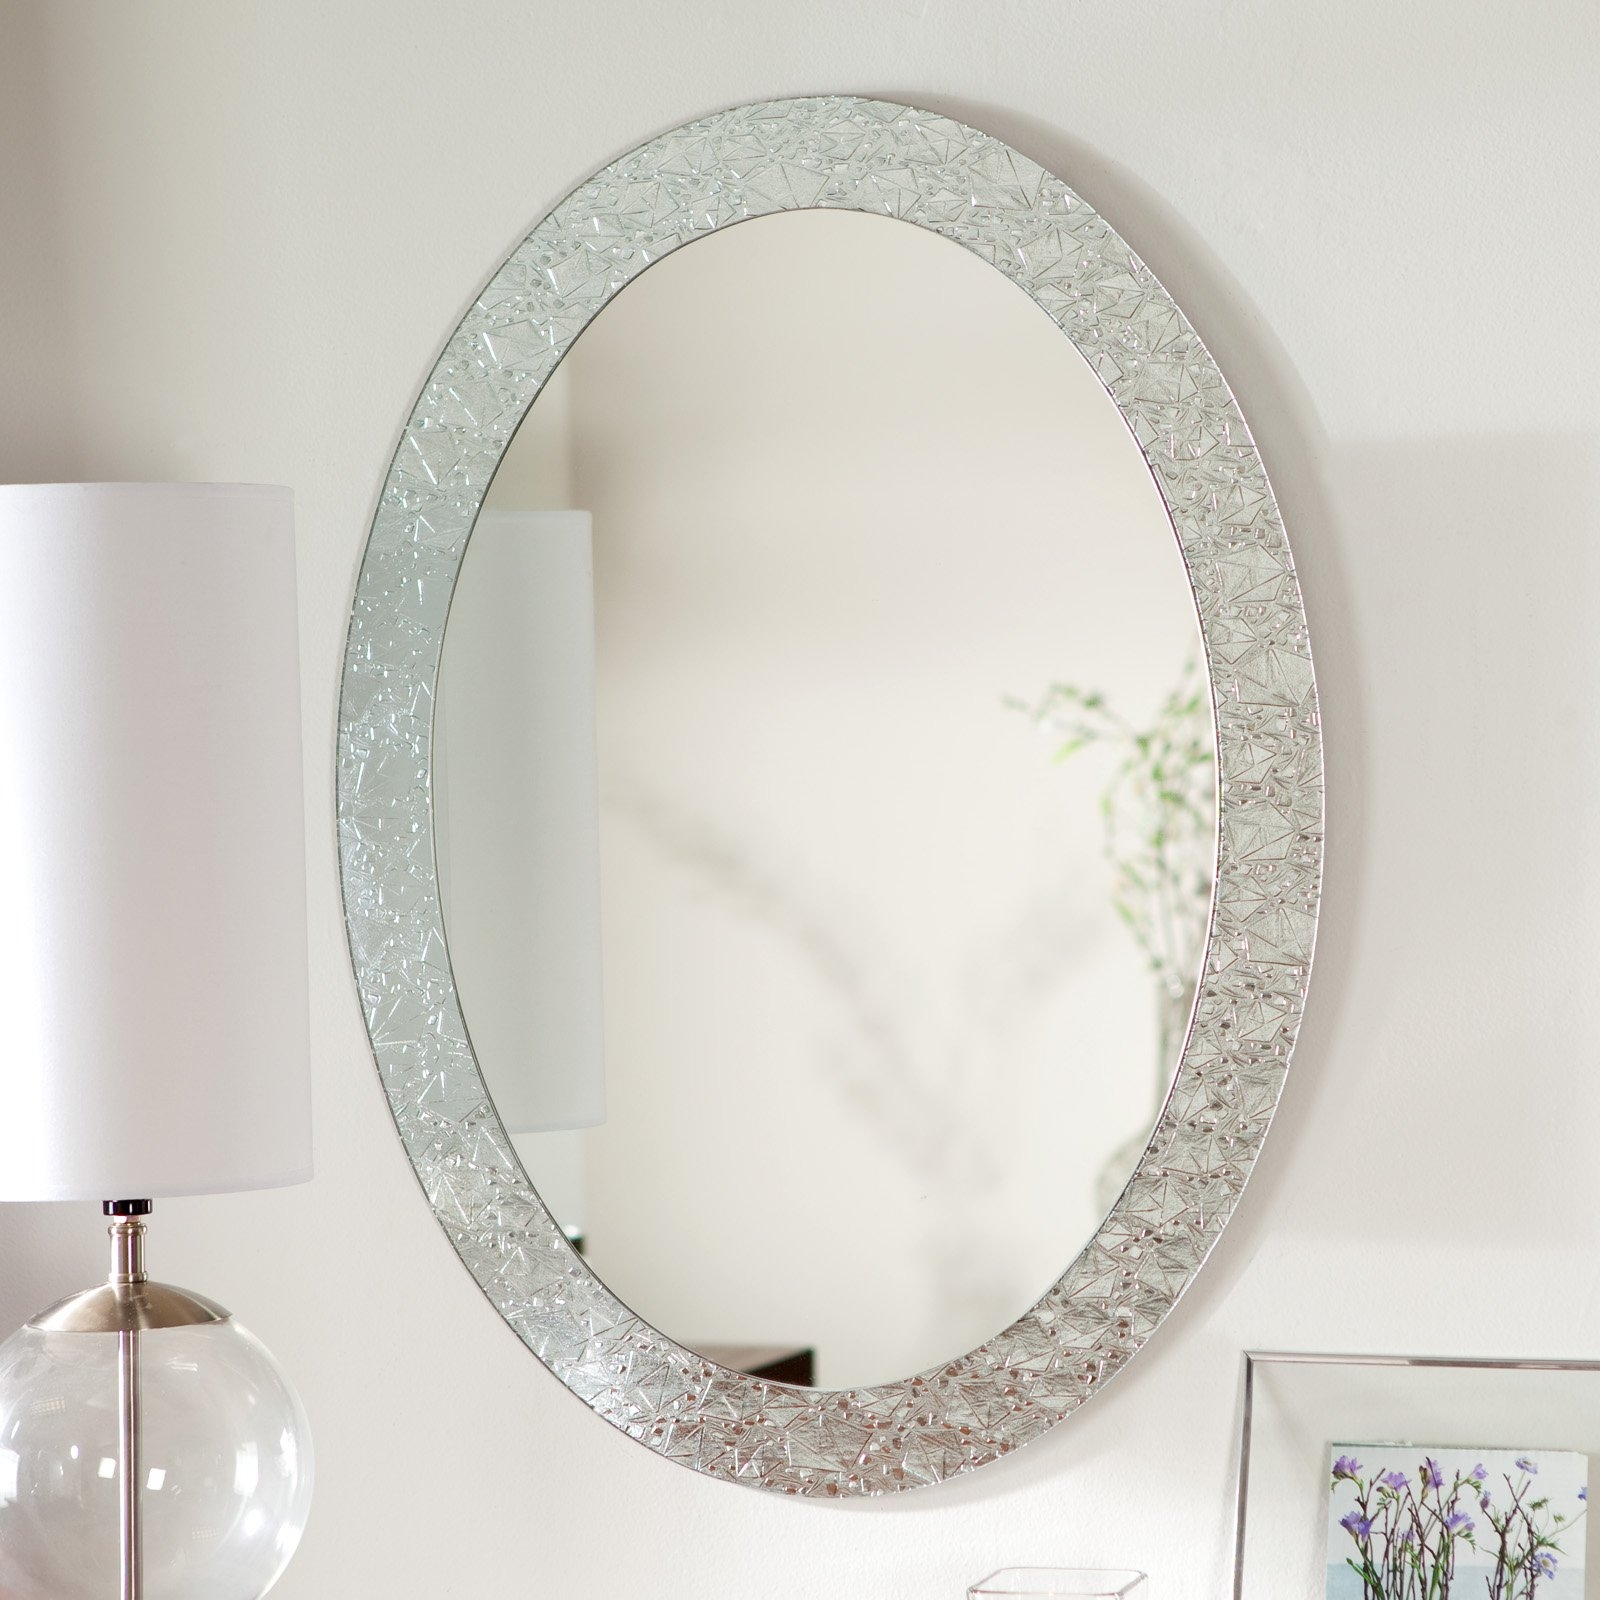 Oval Mirrors For Bathroom Walls Creative Bathroom Decoration Inside Oval Mirrors For Walls (Photo 14 of 15)